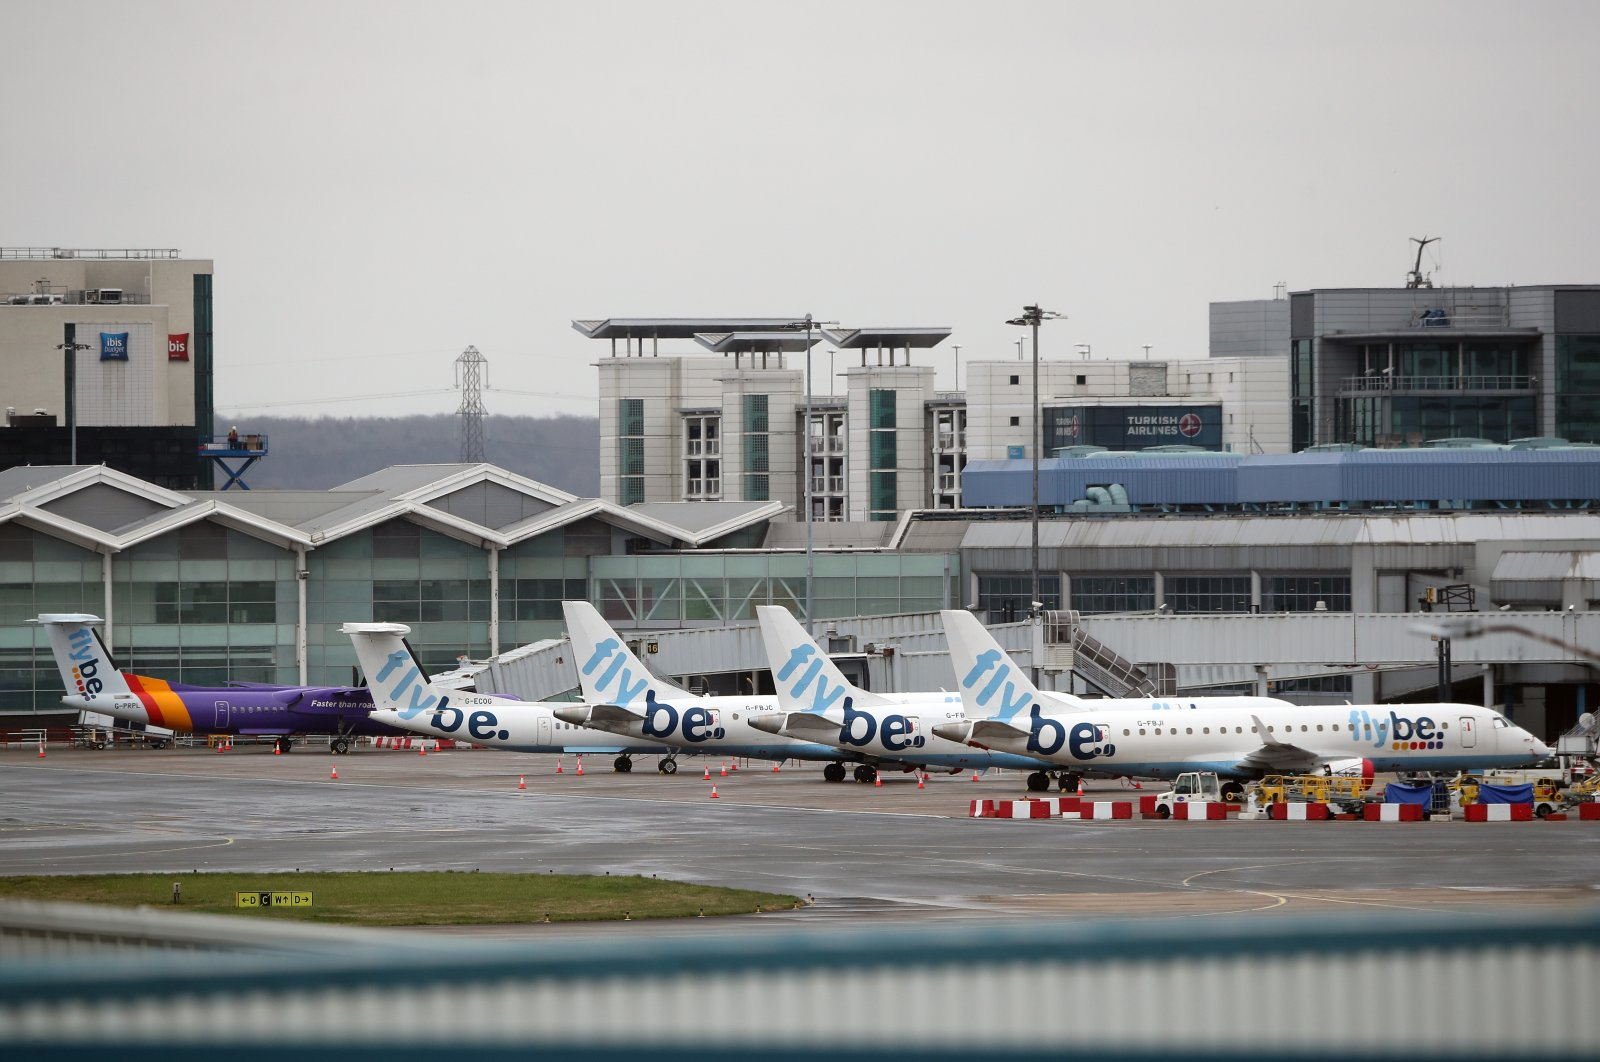 Grounded Flybe planes seen at Birmingham Airport, the U.K., March 19, 2002. (Reuters Photo)